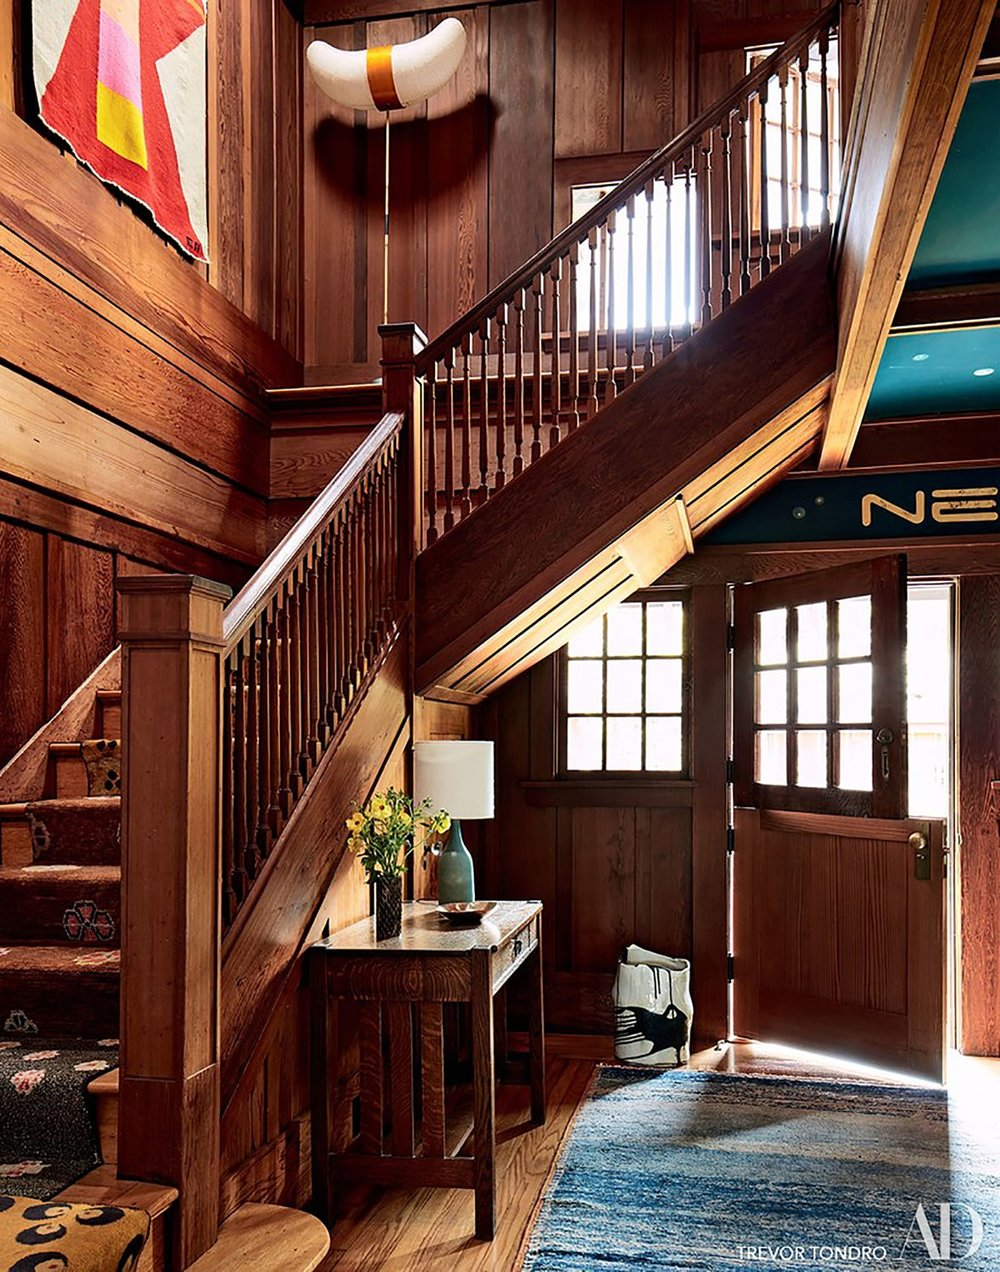 Hills-House-Tradional-Stair-Craft-Studio-Geiger-Architecture-Princeton-NJ.jpg